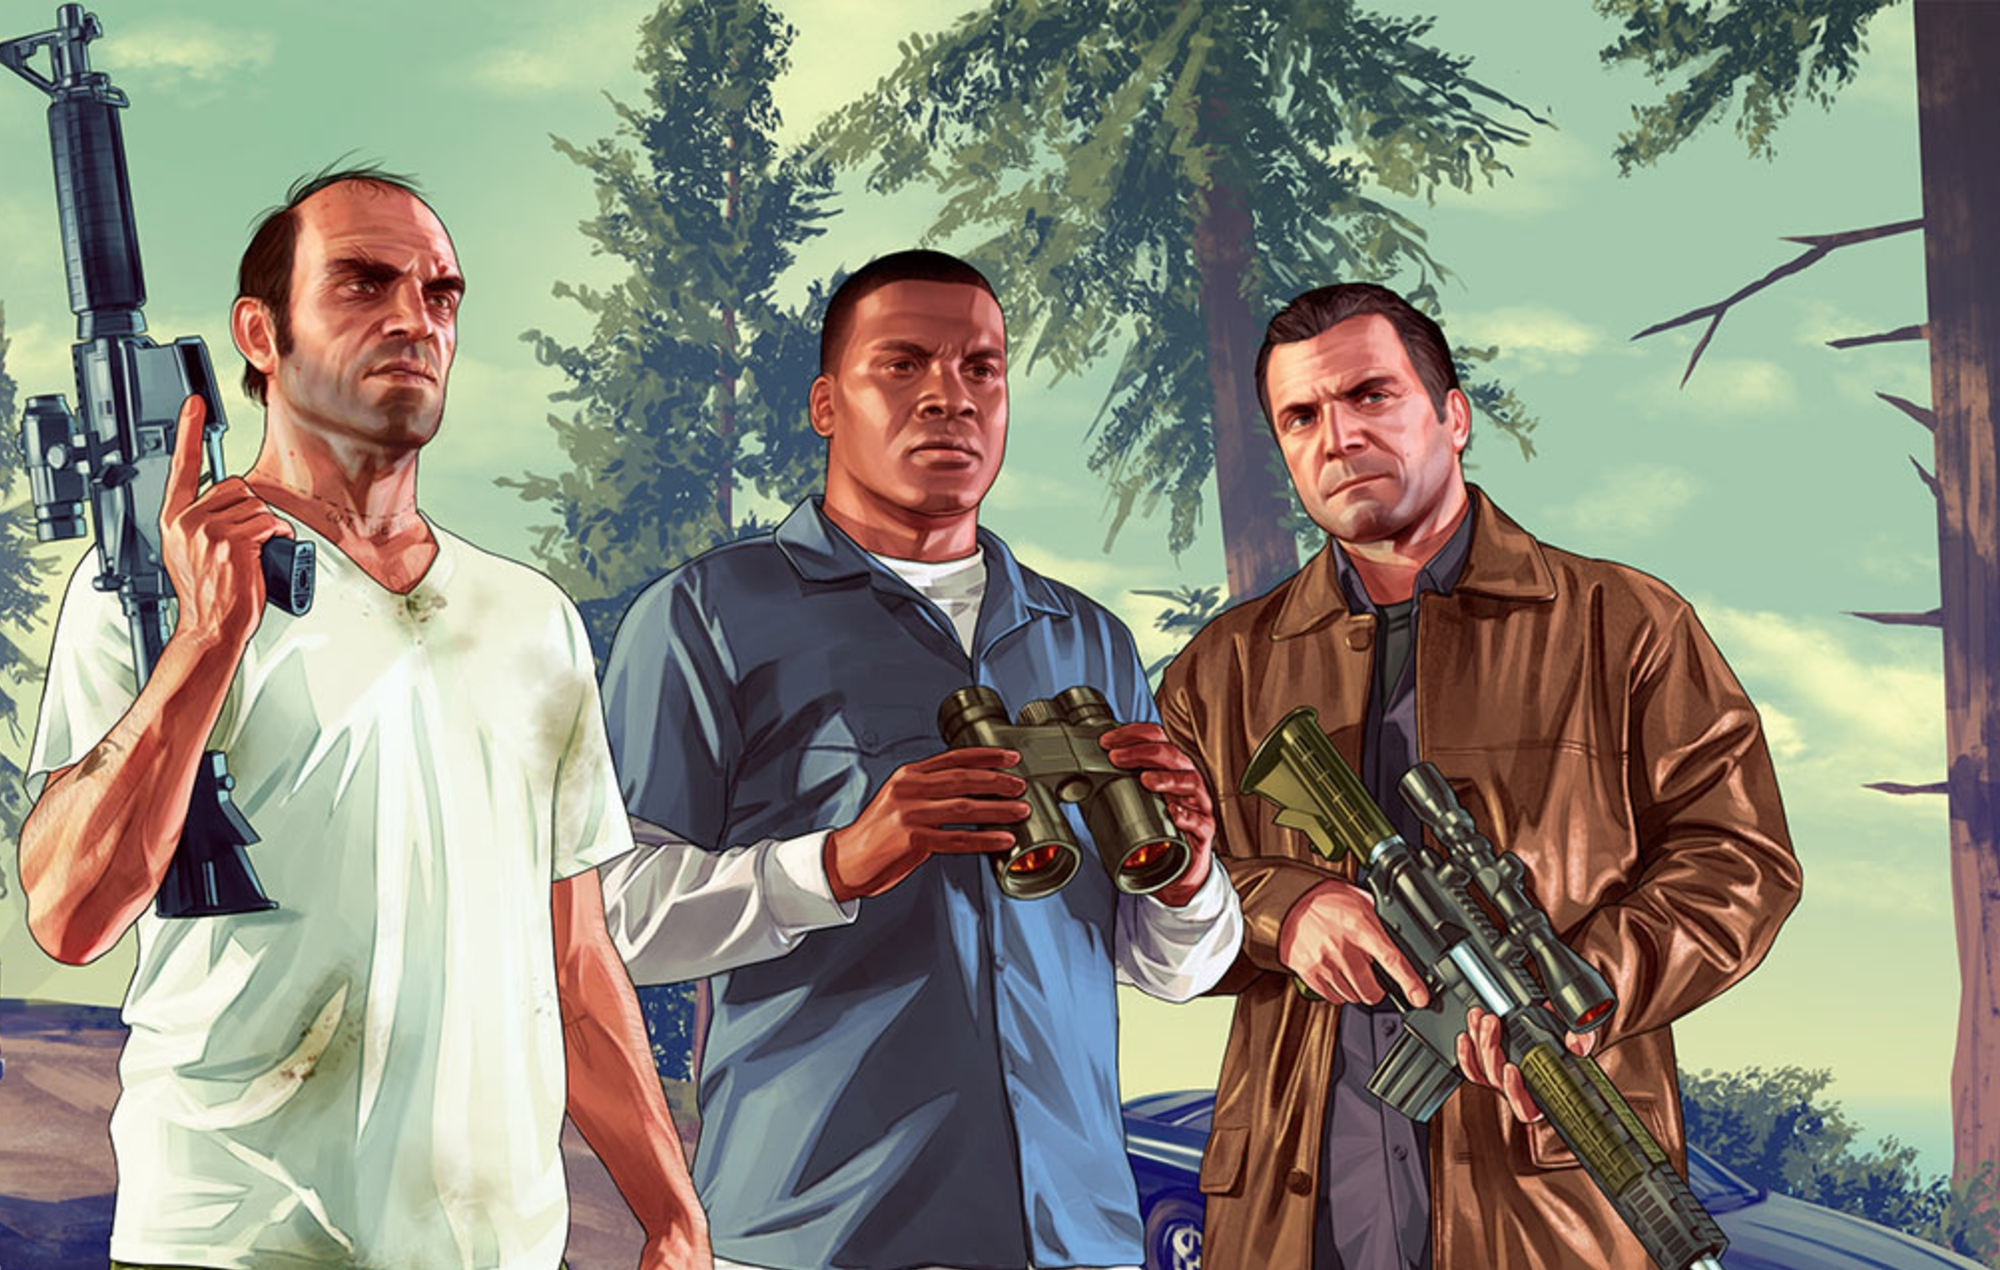 Gta V Will Be Enhanced And Expanded For The Playstation 5